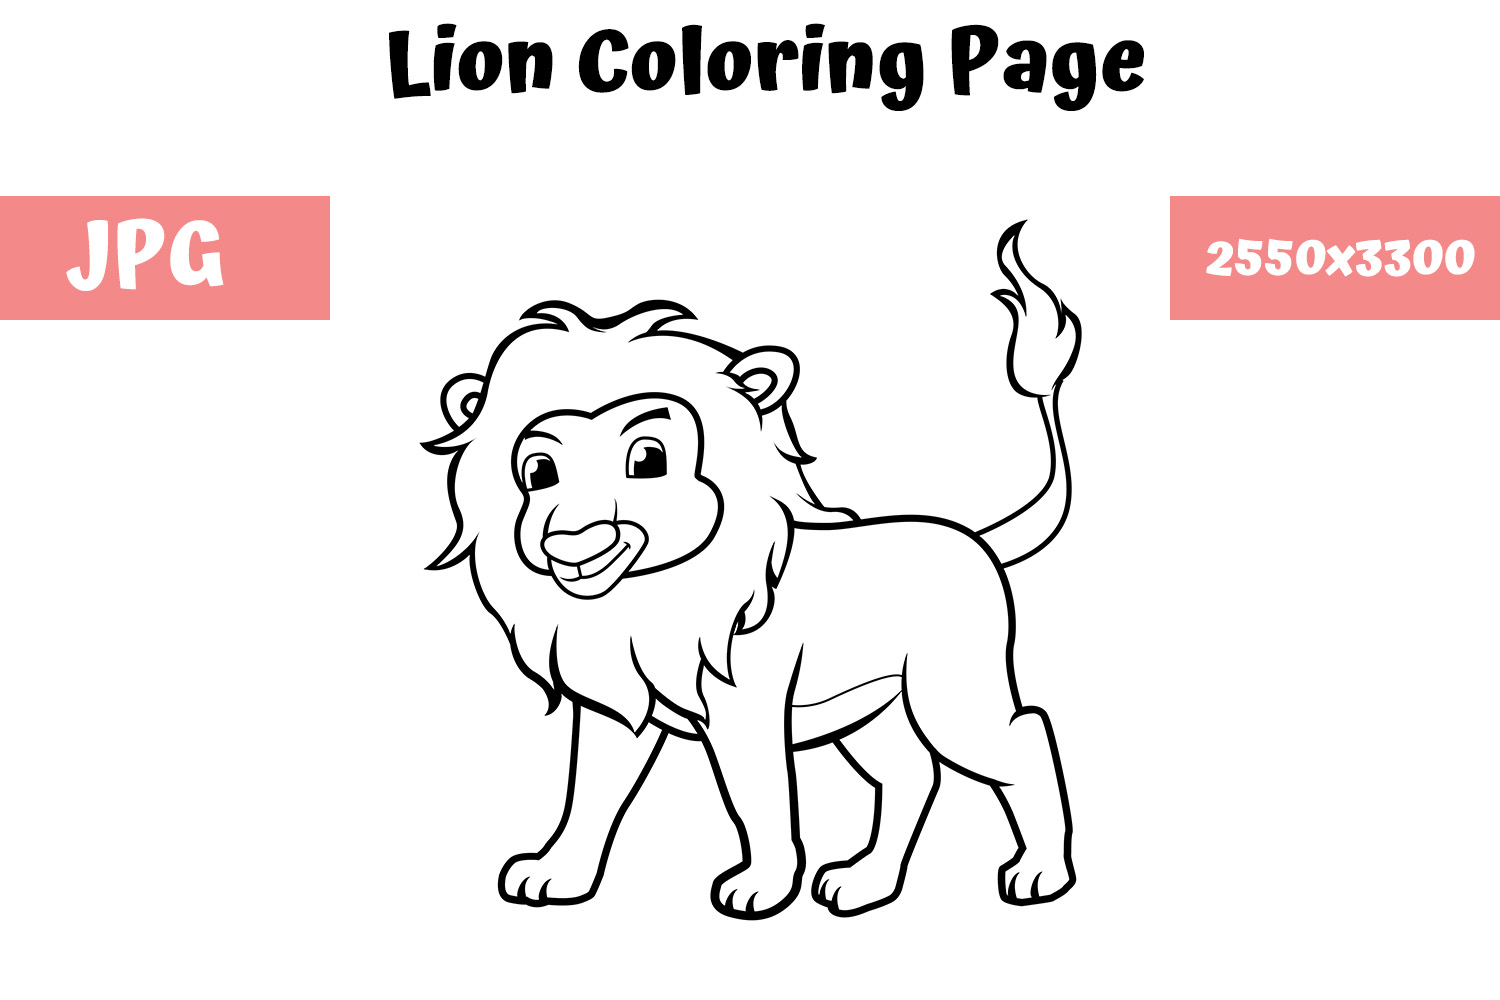 - Coloring Book Page For Kids - Lion (Graphic) By MyBeautifulFiles